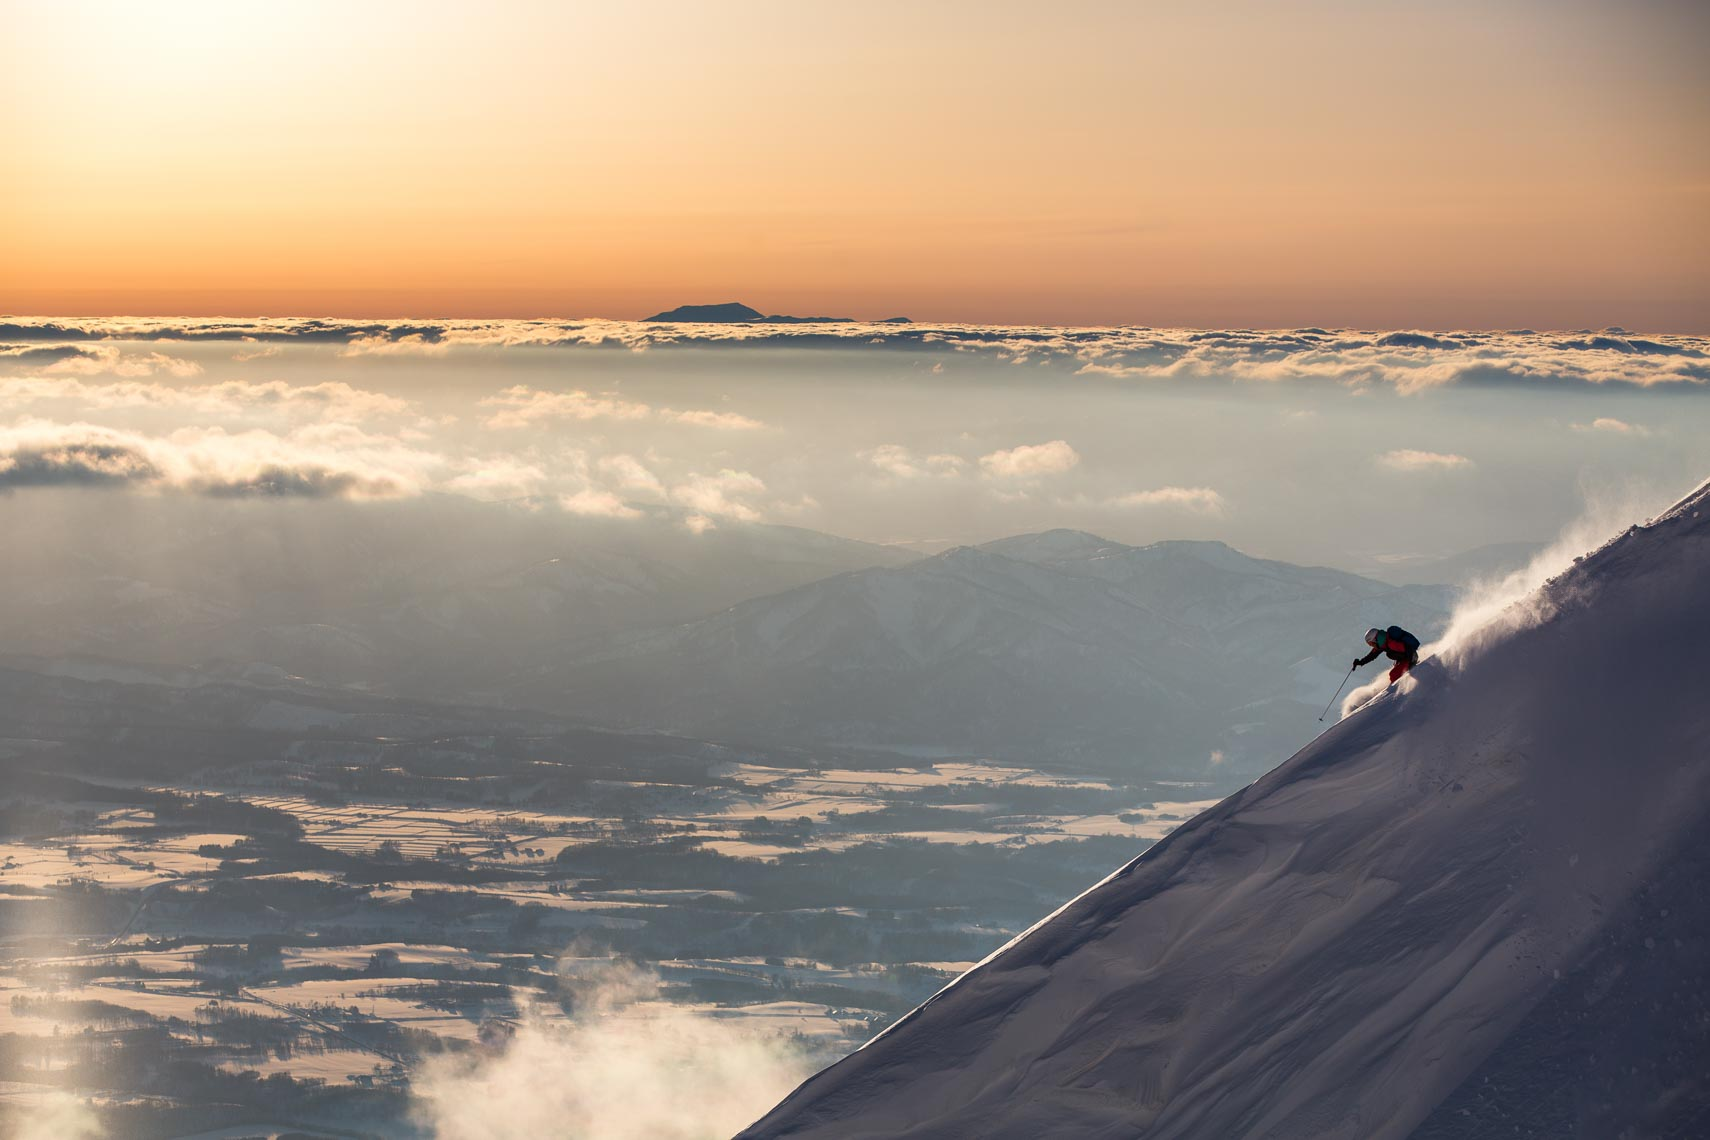 Hakuba ski hill descent at sunset above the clouds